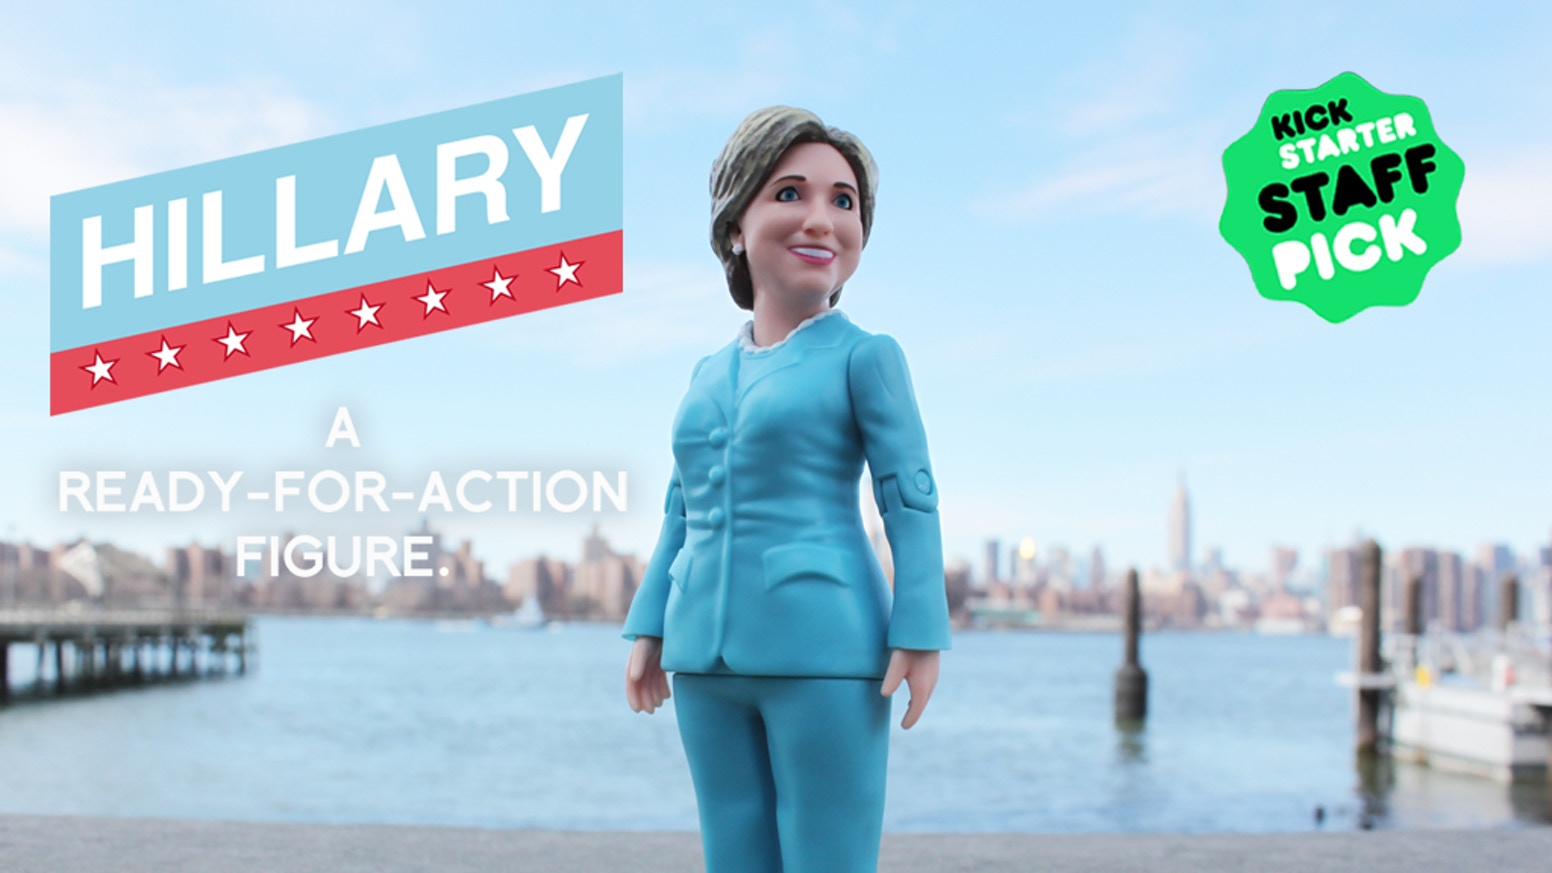 Hillary Clinton has been made into an action figure.